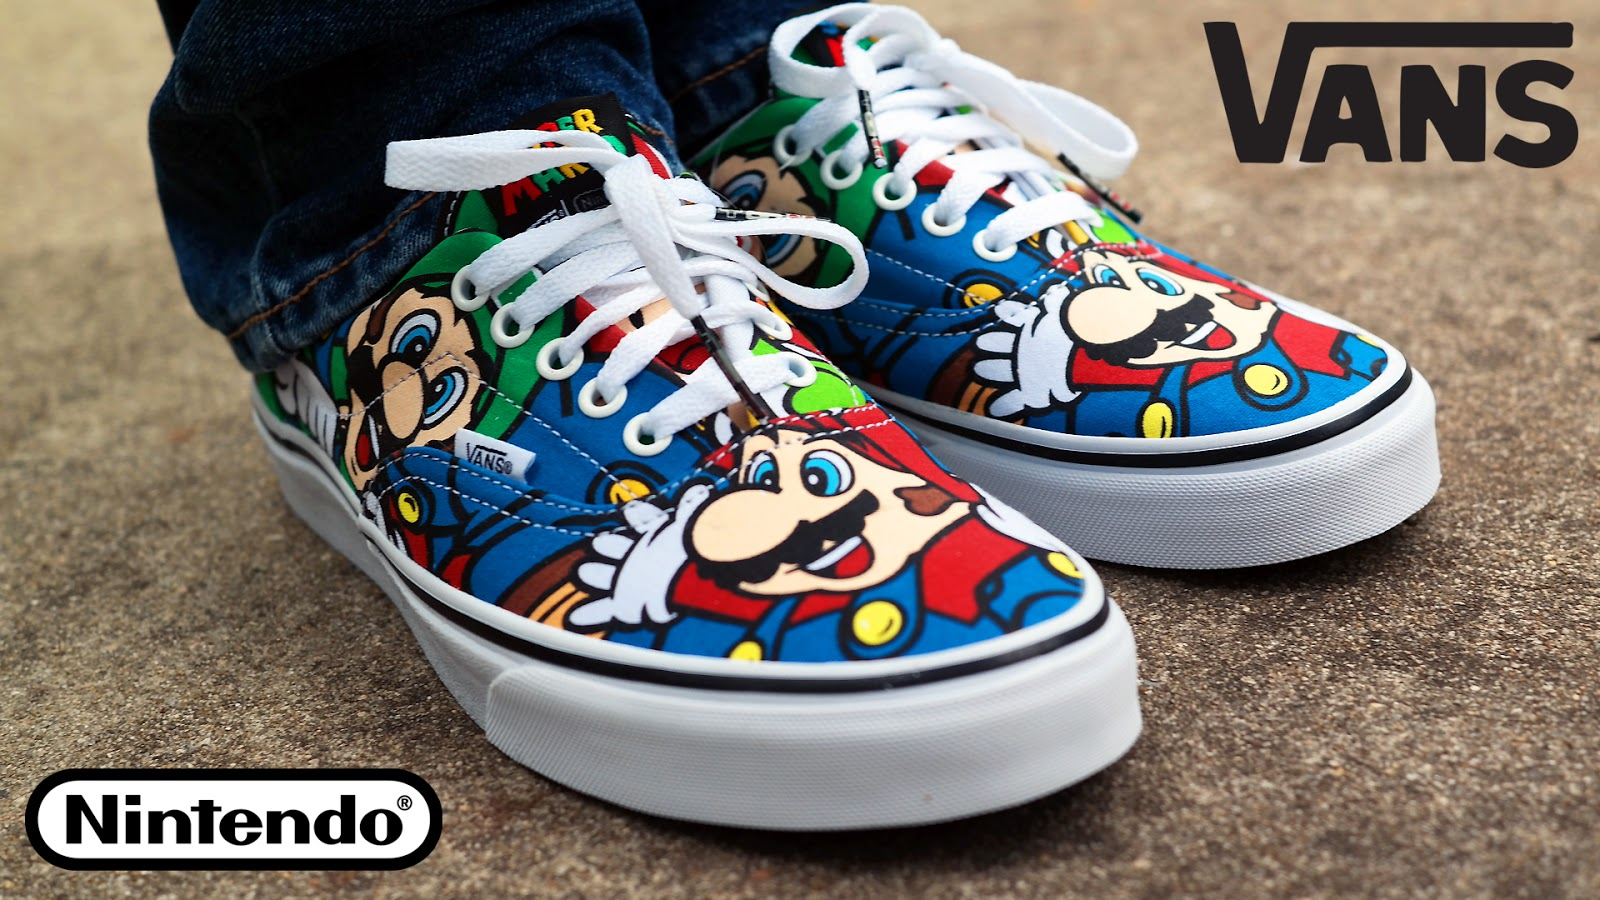 vans x nintendo collection era mario and friends skate shoe super mario vans